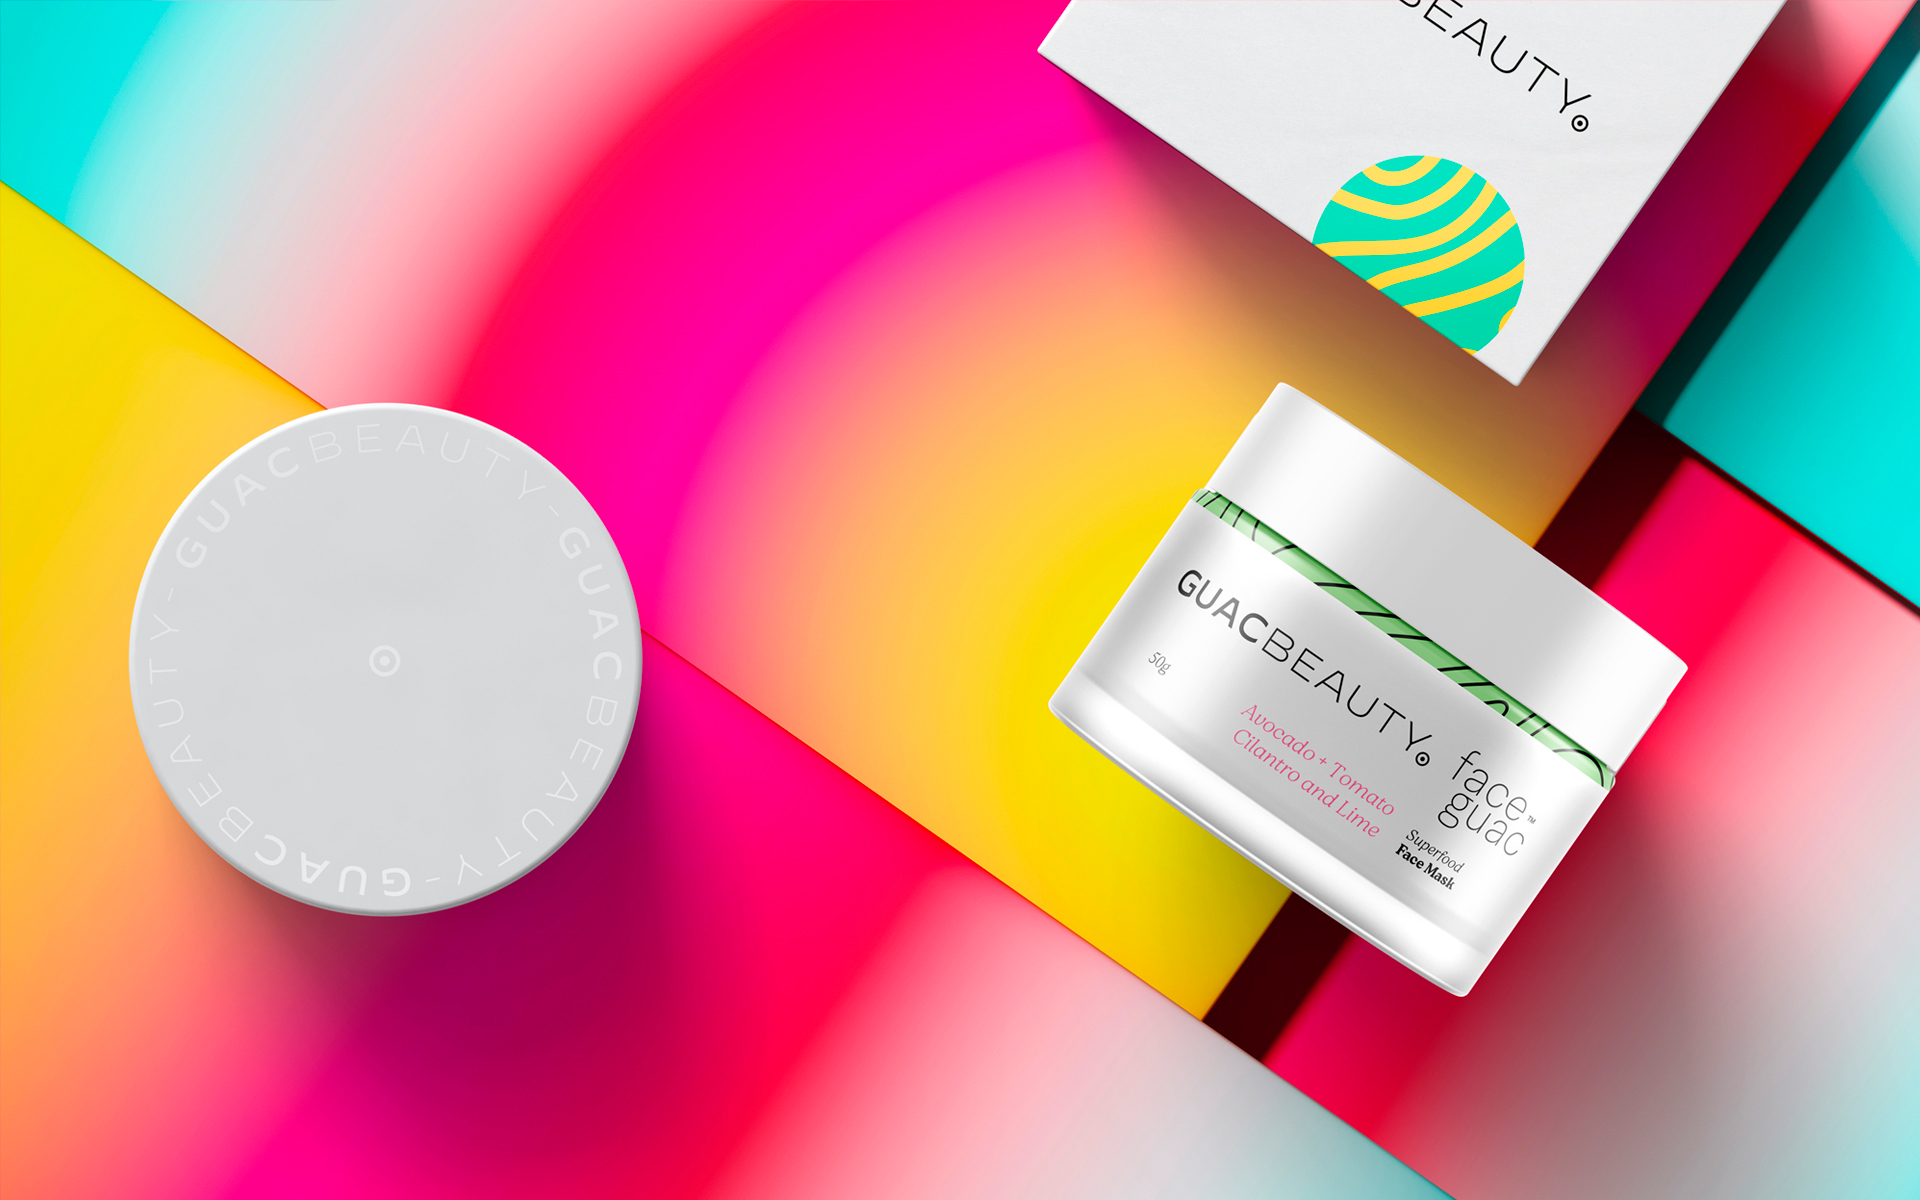 Branding and Packaging Design for GuacBeauty by ADD Branding